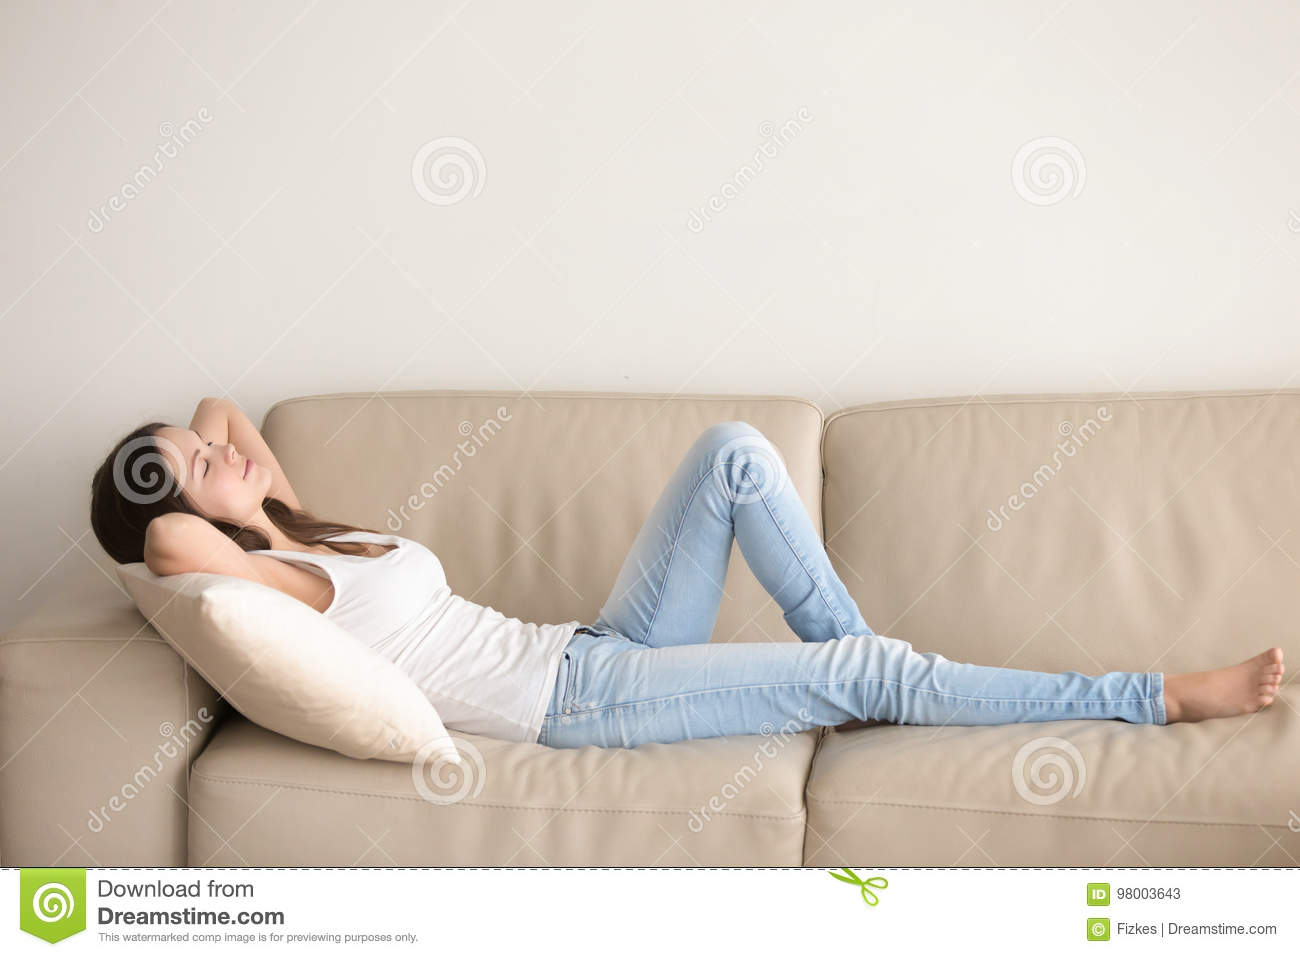 Young woman lying on couch, relaxing with hands behind head